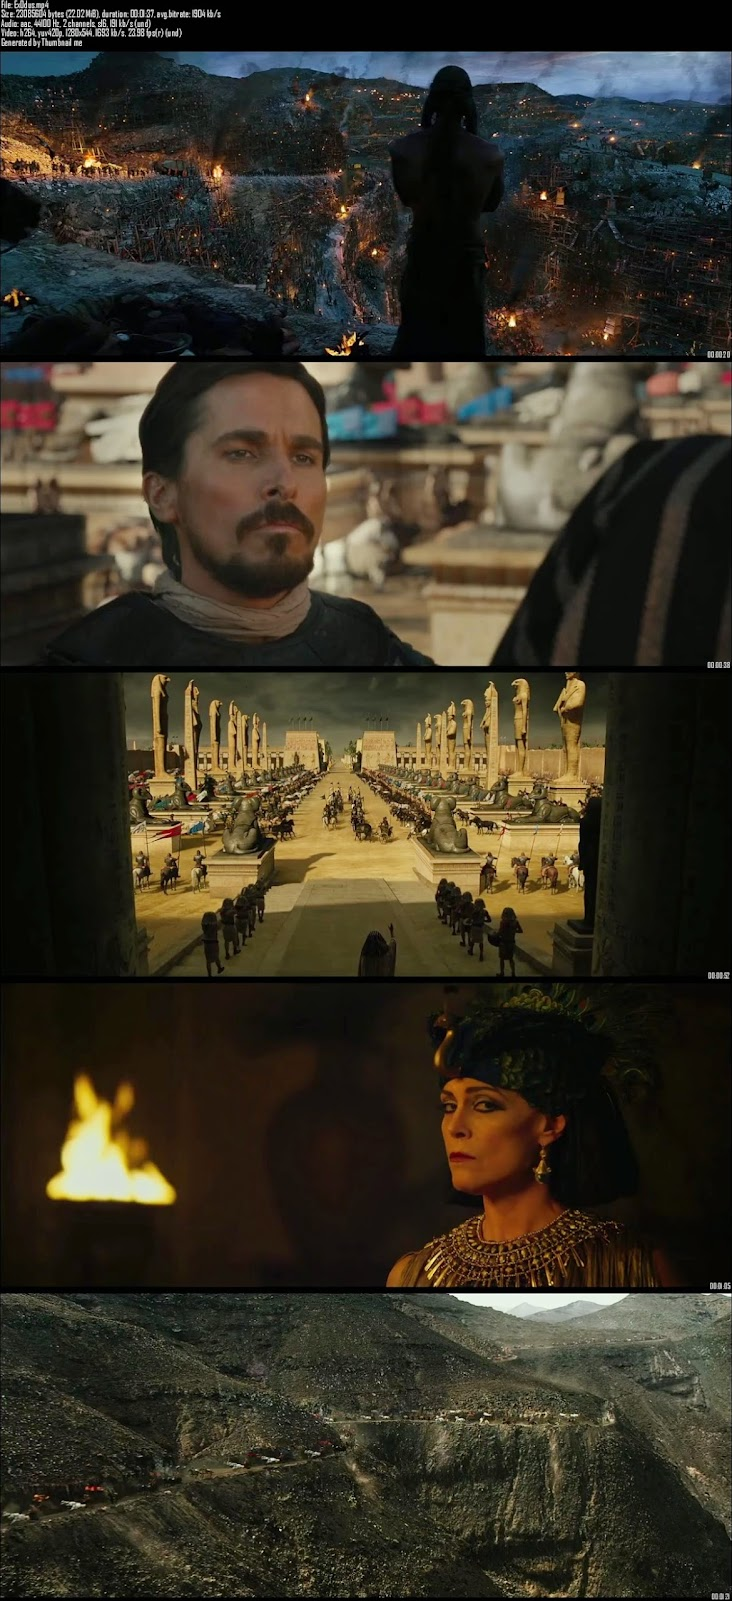 Mediafire Resumable Download Link For Teaser Promo Of Exodus Gods and Kings (2014)